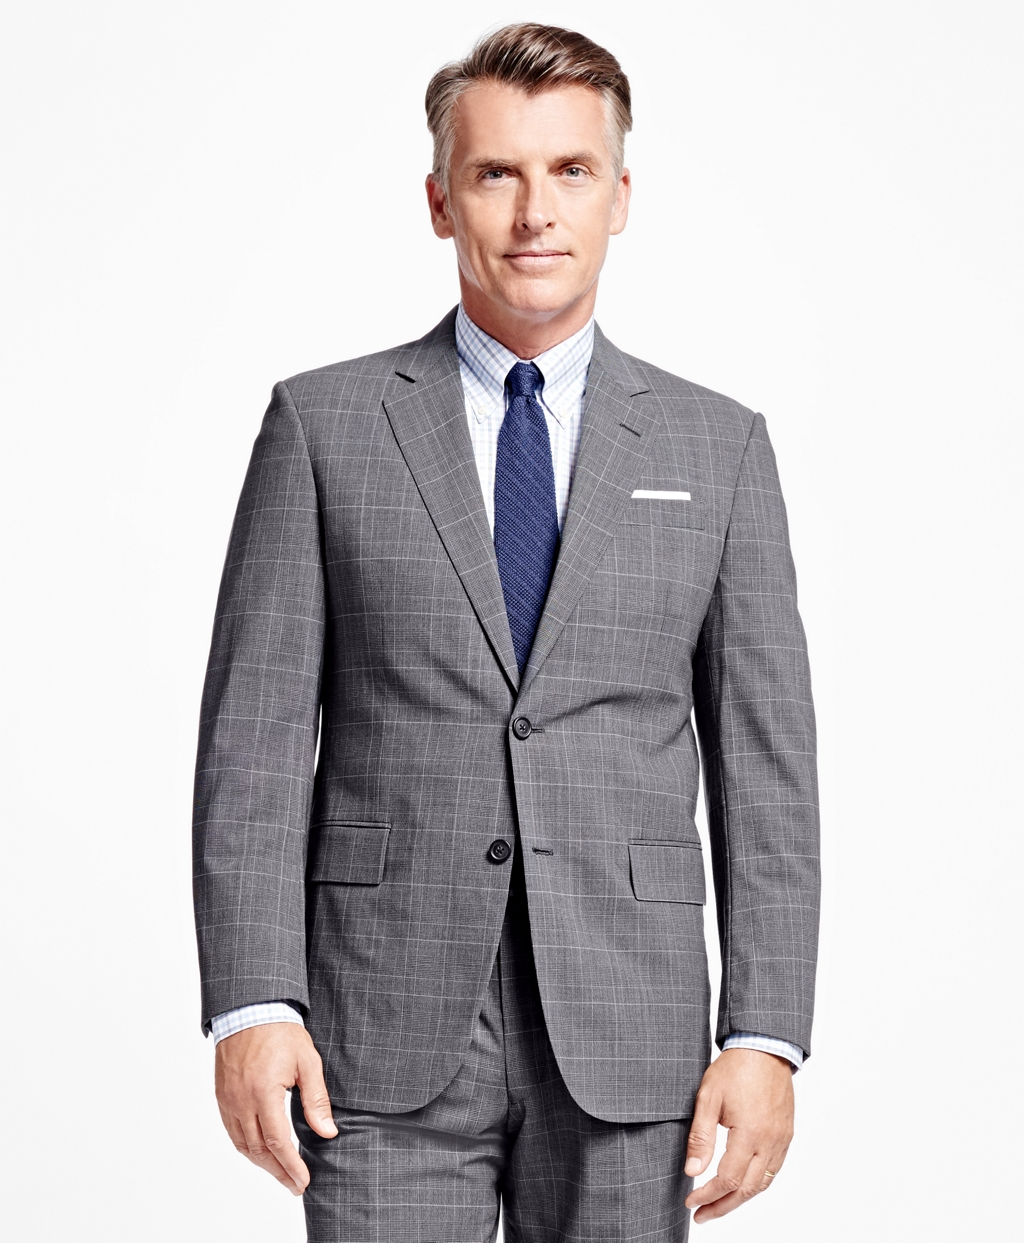 Brooks Brothers summer suits like this one are currently 2 for $899 (Photo via Brooks Brothers)